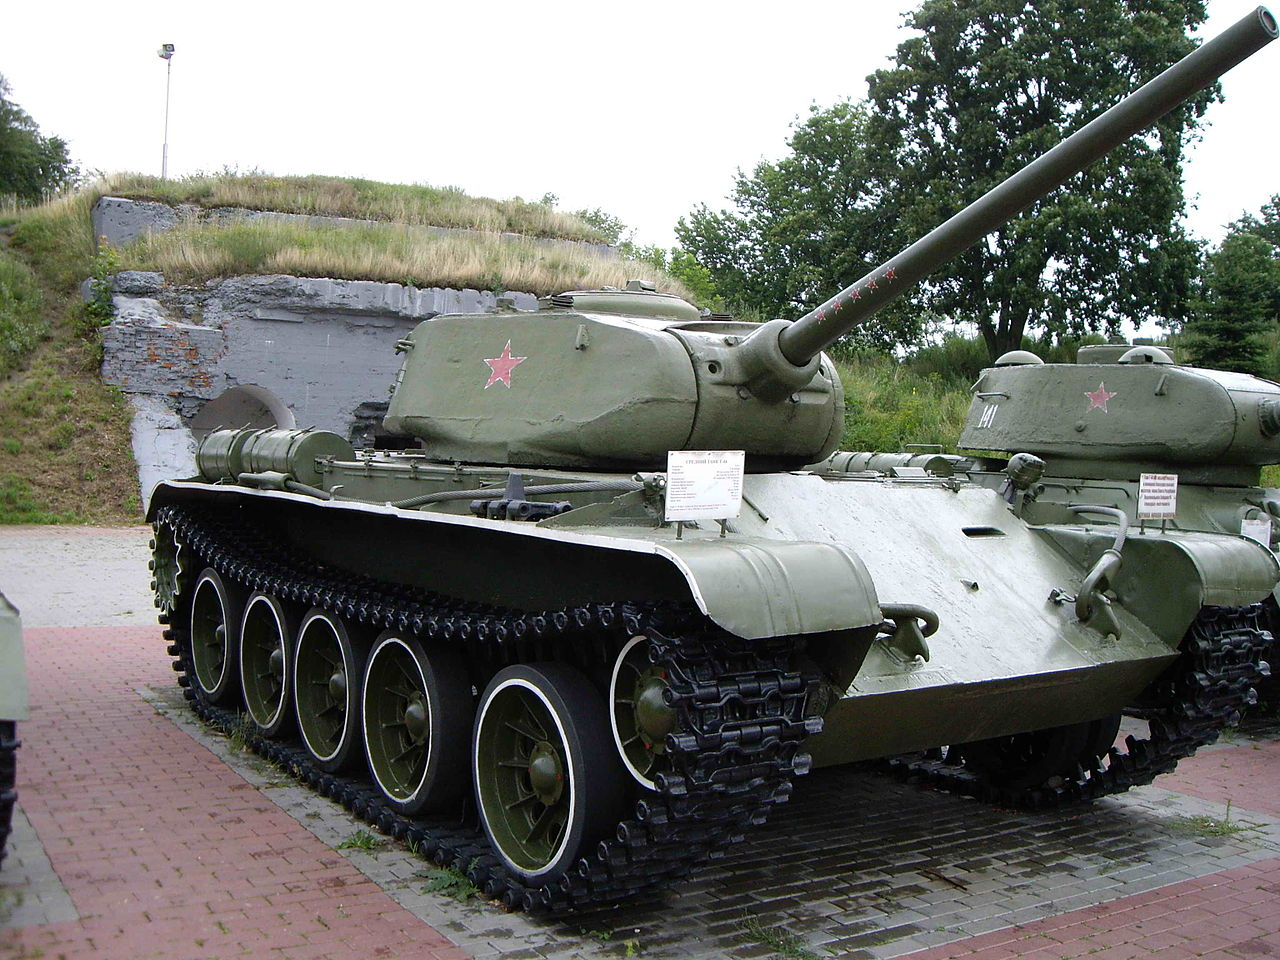 A T-44 on display in Brest, Belarus